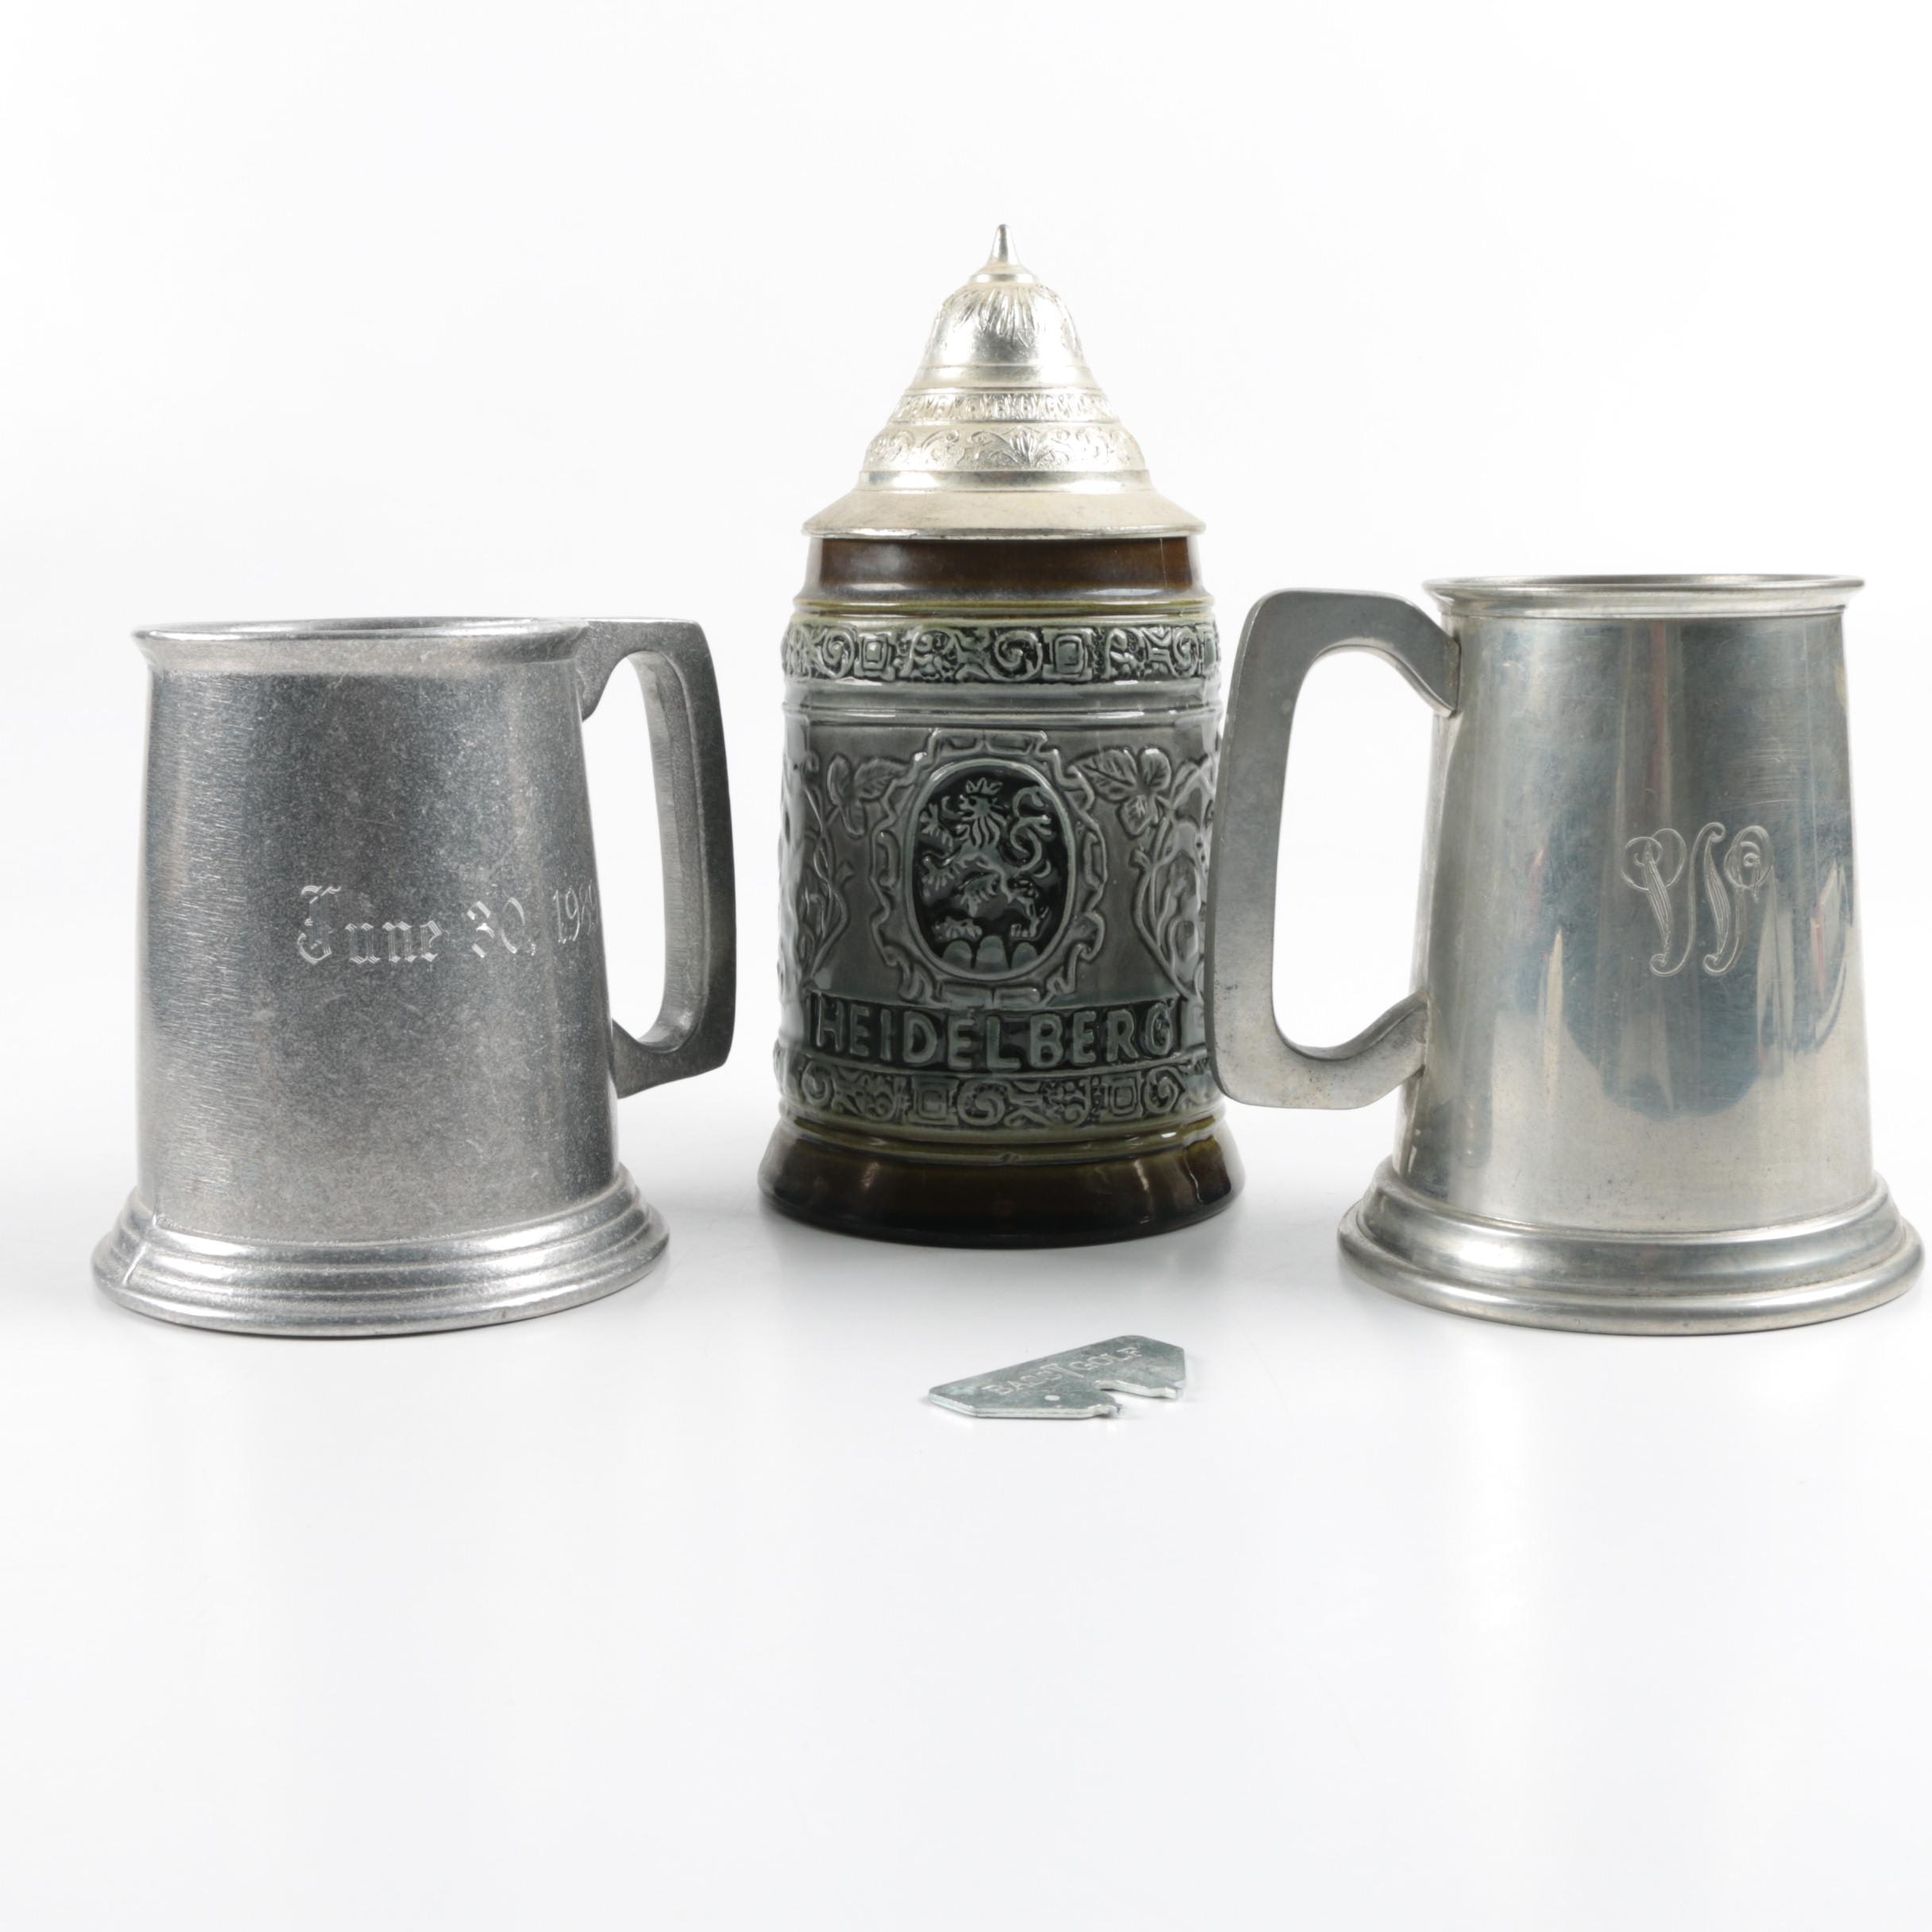 Original King Lidded Stein and Pewter Steins